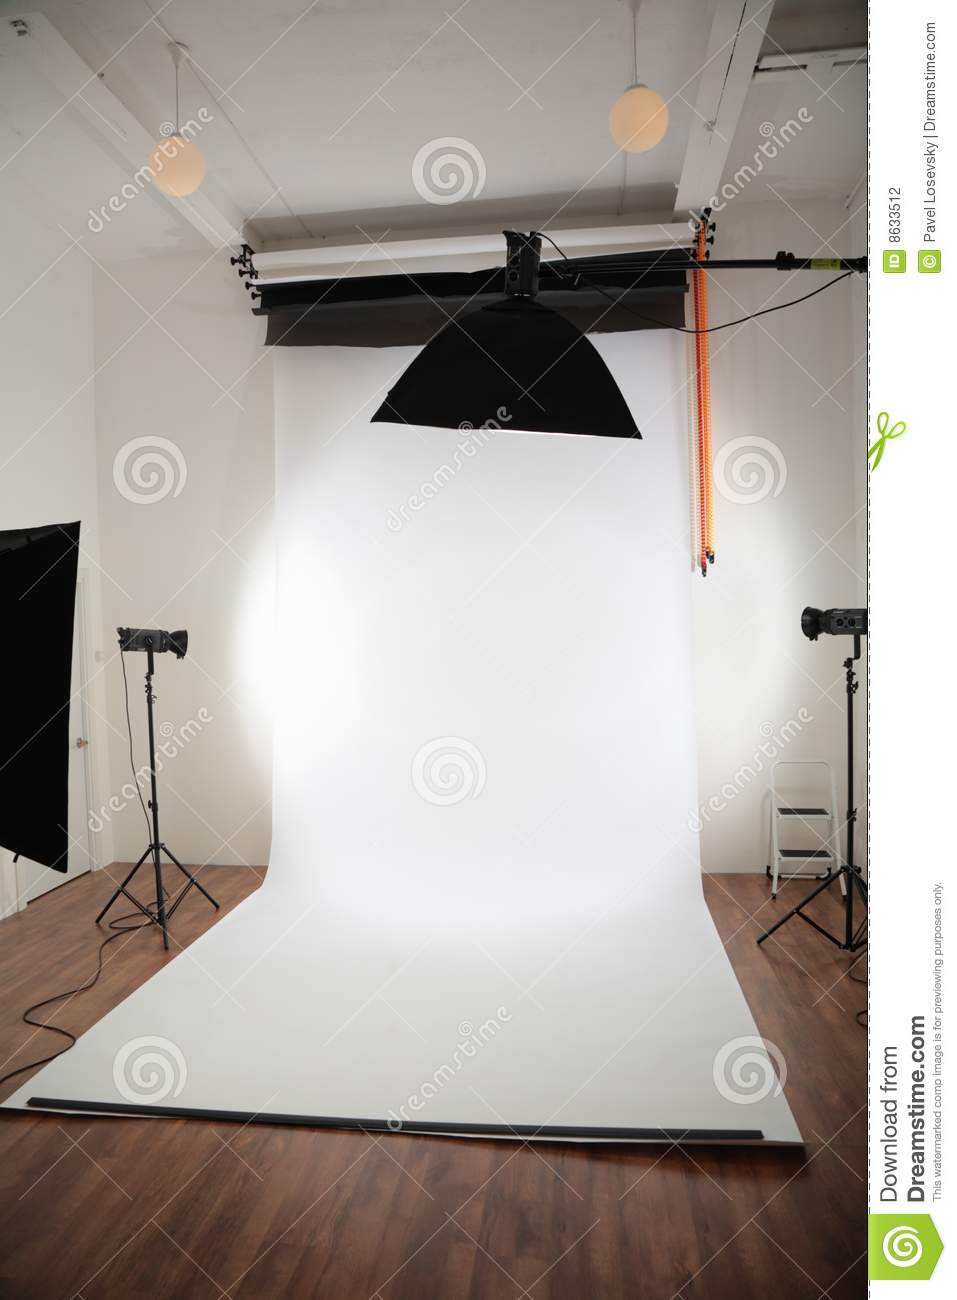 photographic studio interior stock photography